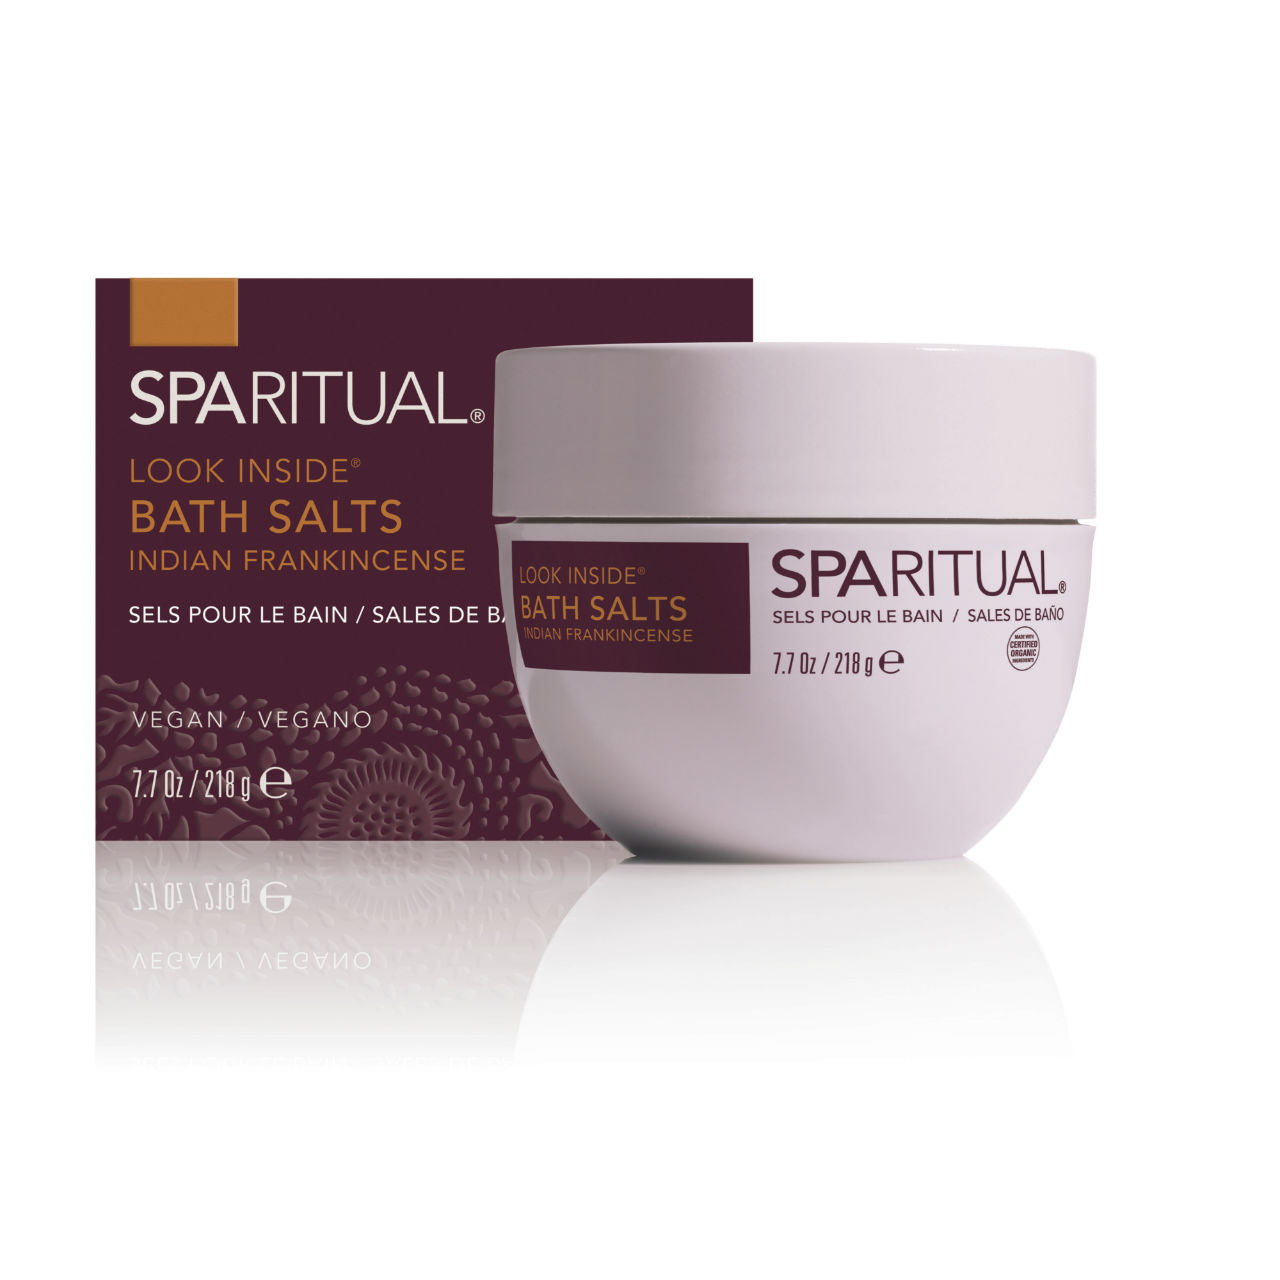 SPARITUAL Look Inside® Bath Salts